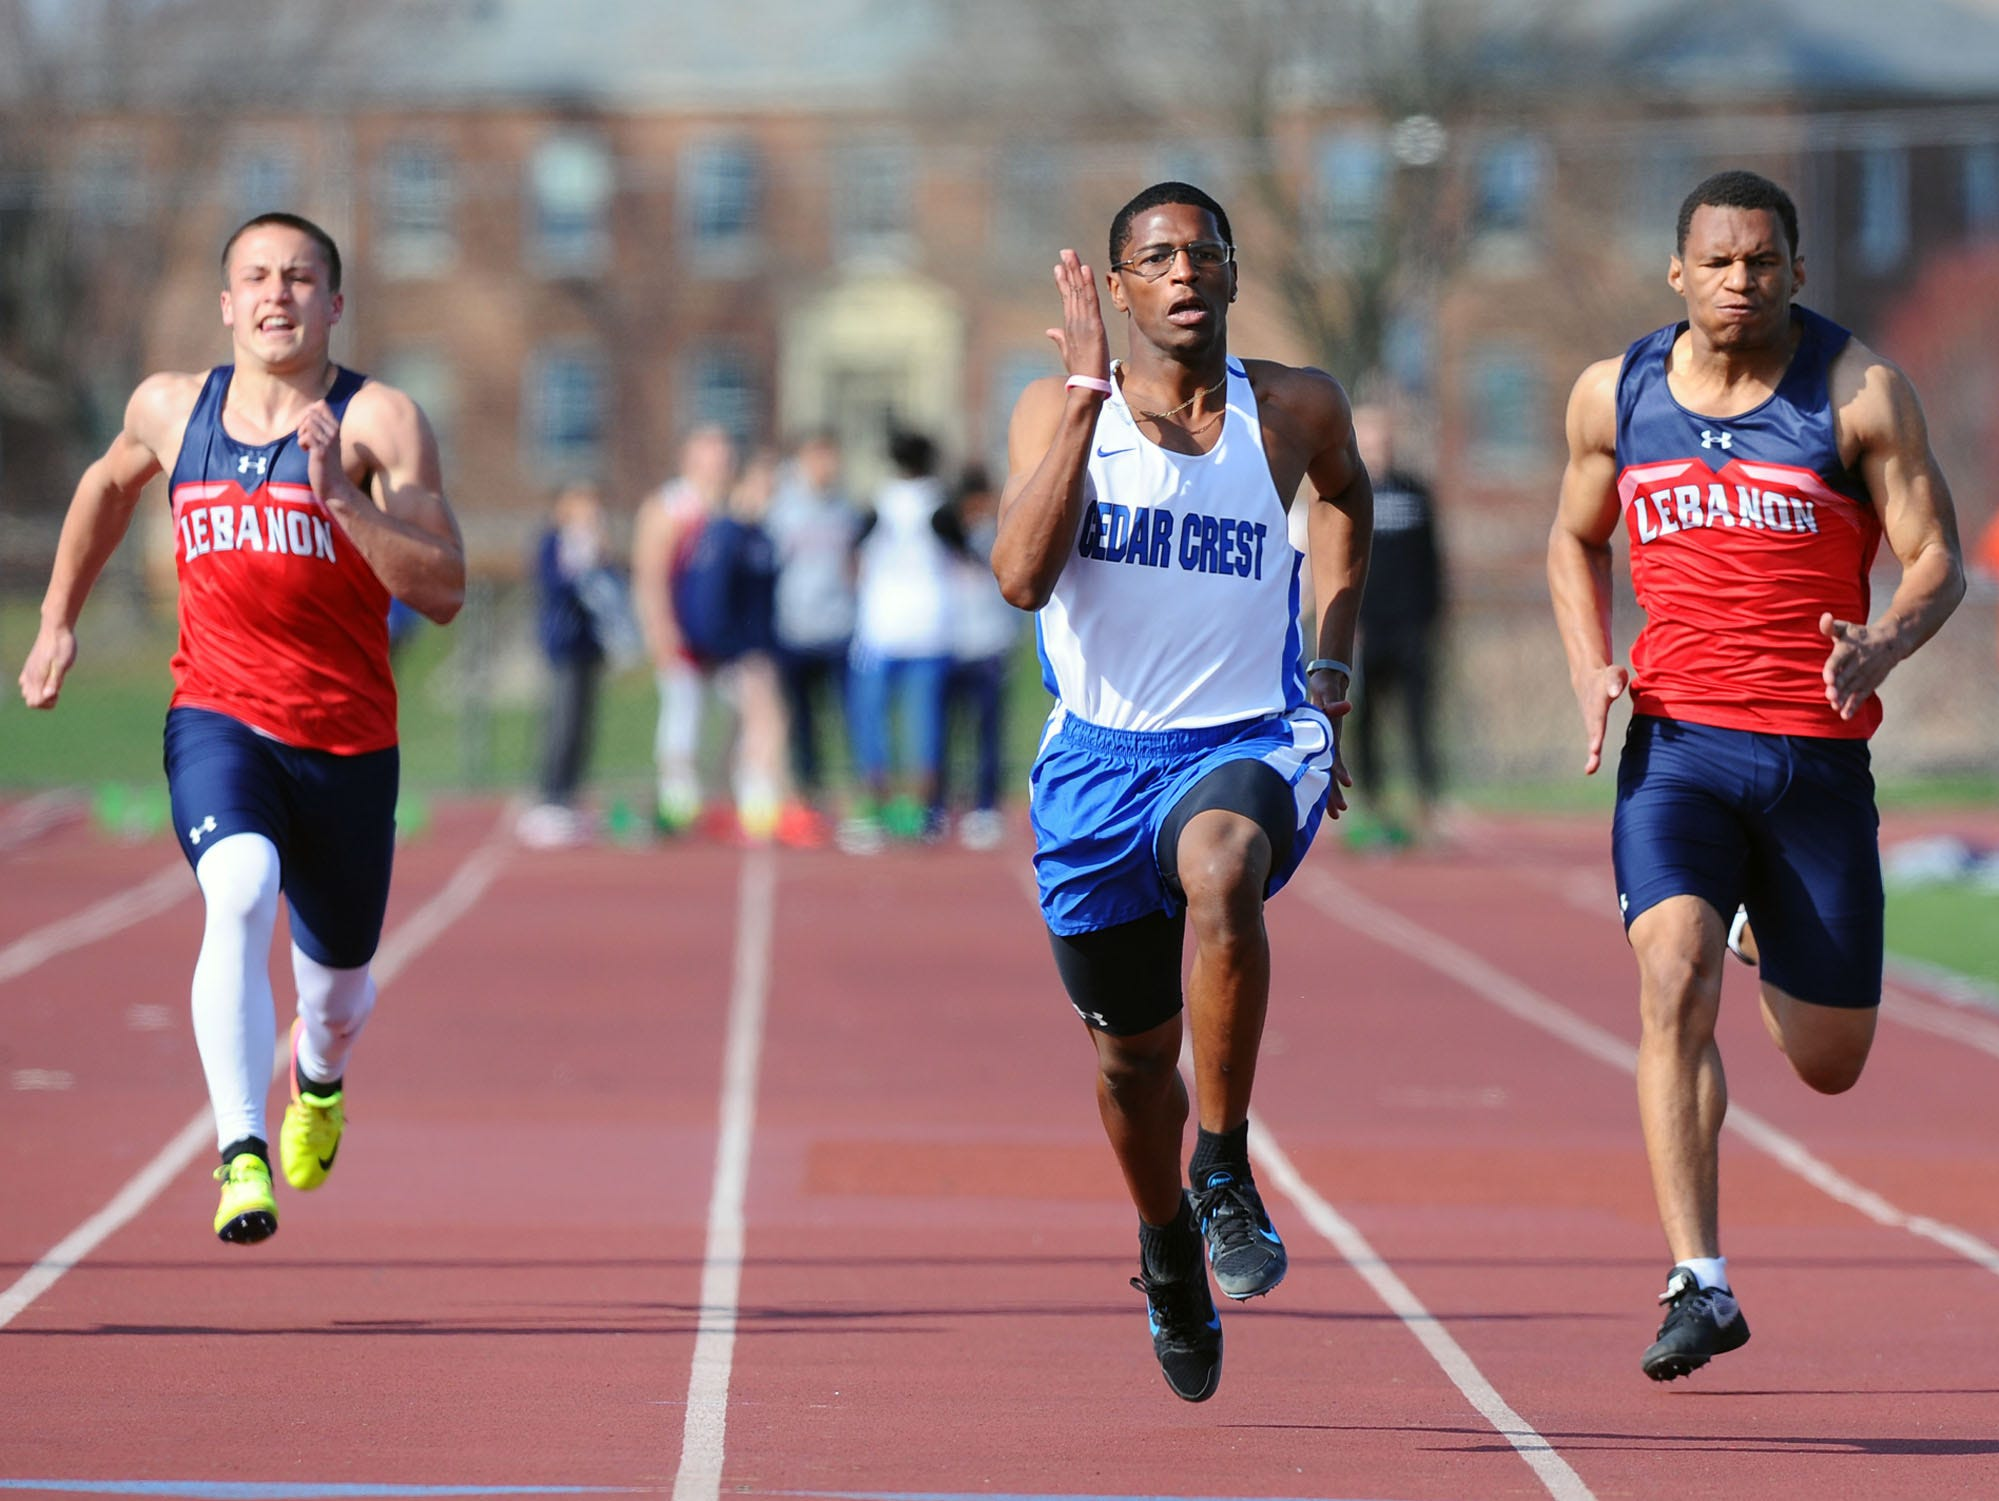 Cedar Crest's Jepel Gibbs sprints to victory in the 100 dash on Thursday.